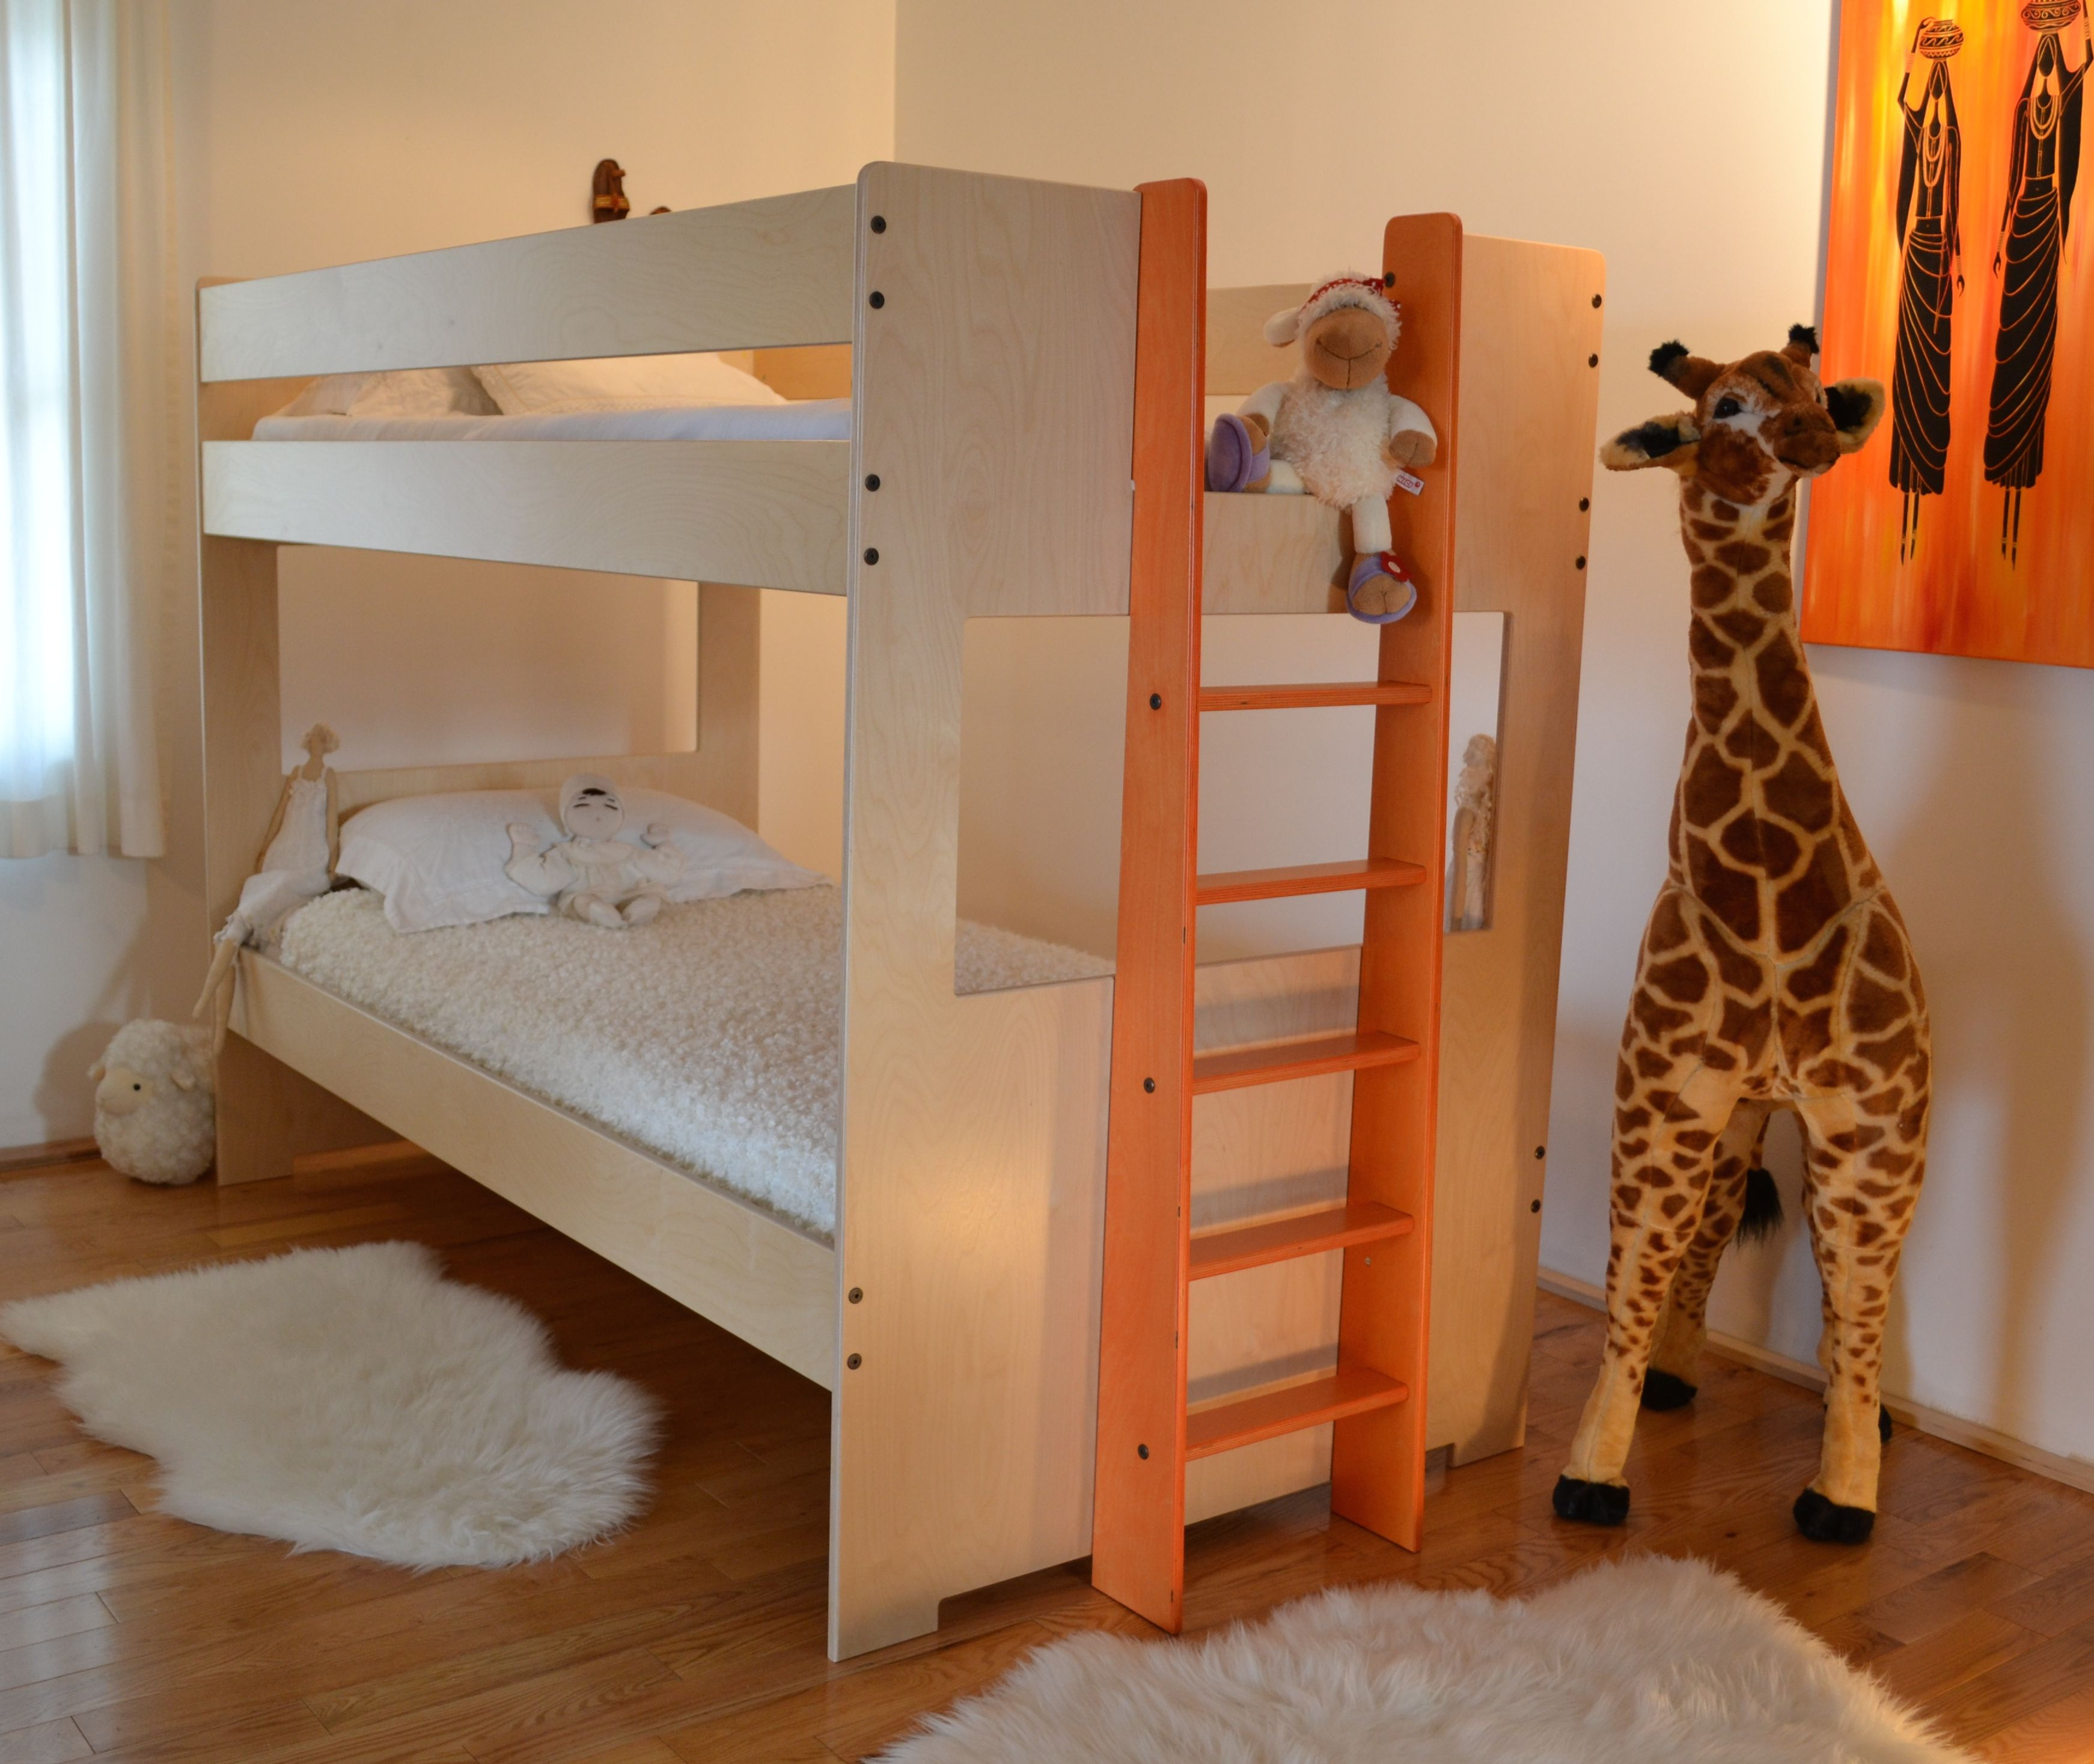 Unique Bunk Beds: Buy A Handmade Twin Bunk Bed, Made To Order From Loft And